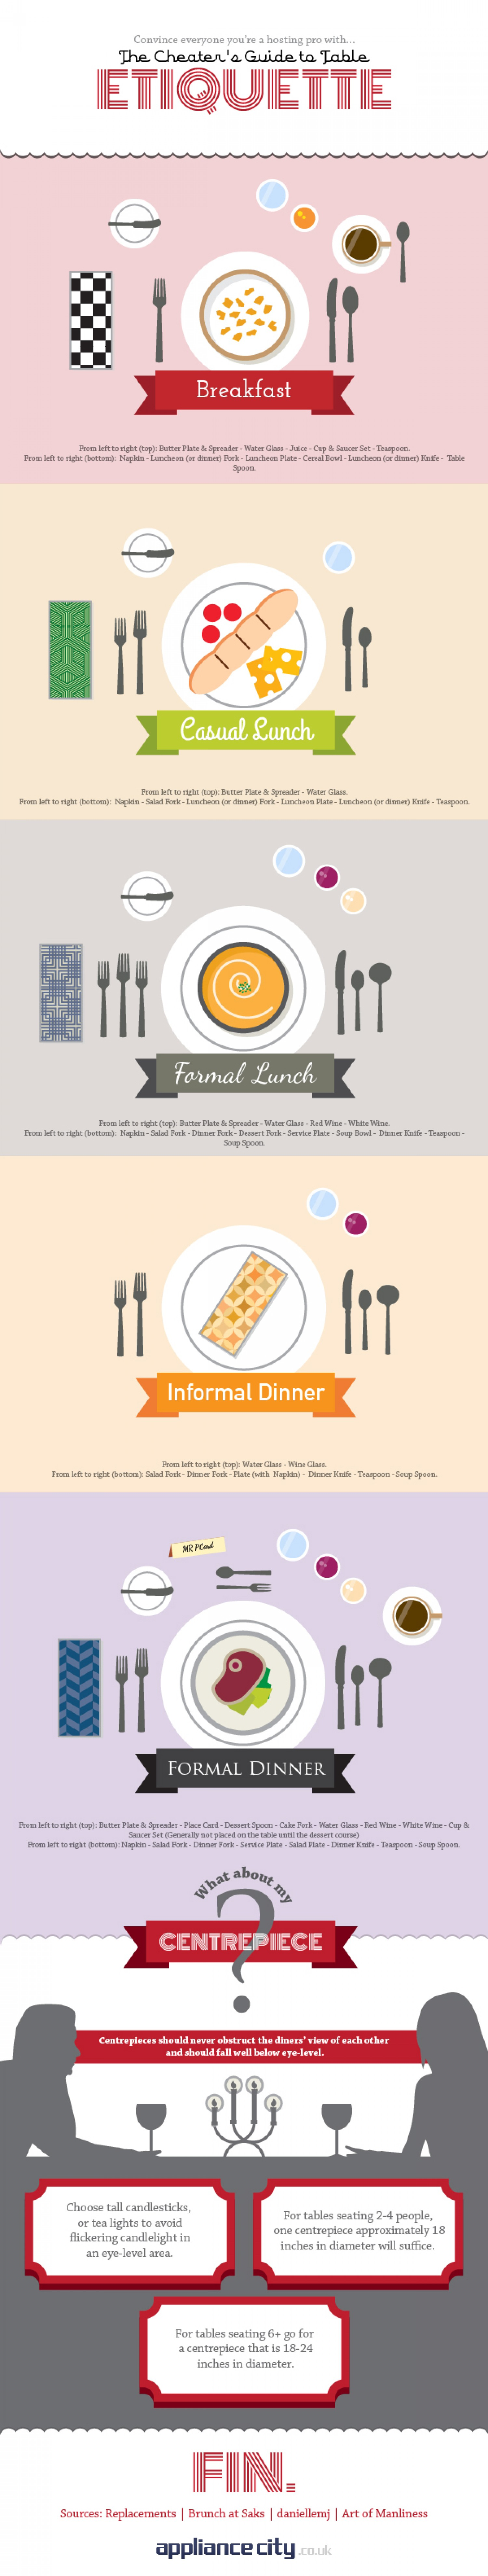 The Cheater\'s Guide to Table Etiquette Infographic   Etiqueta ...